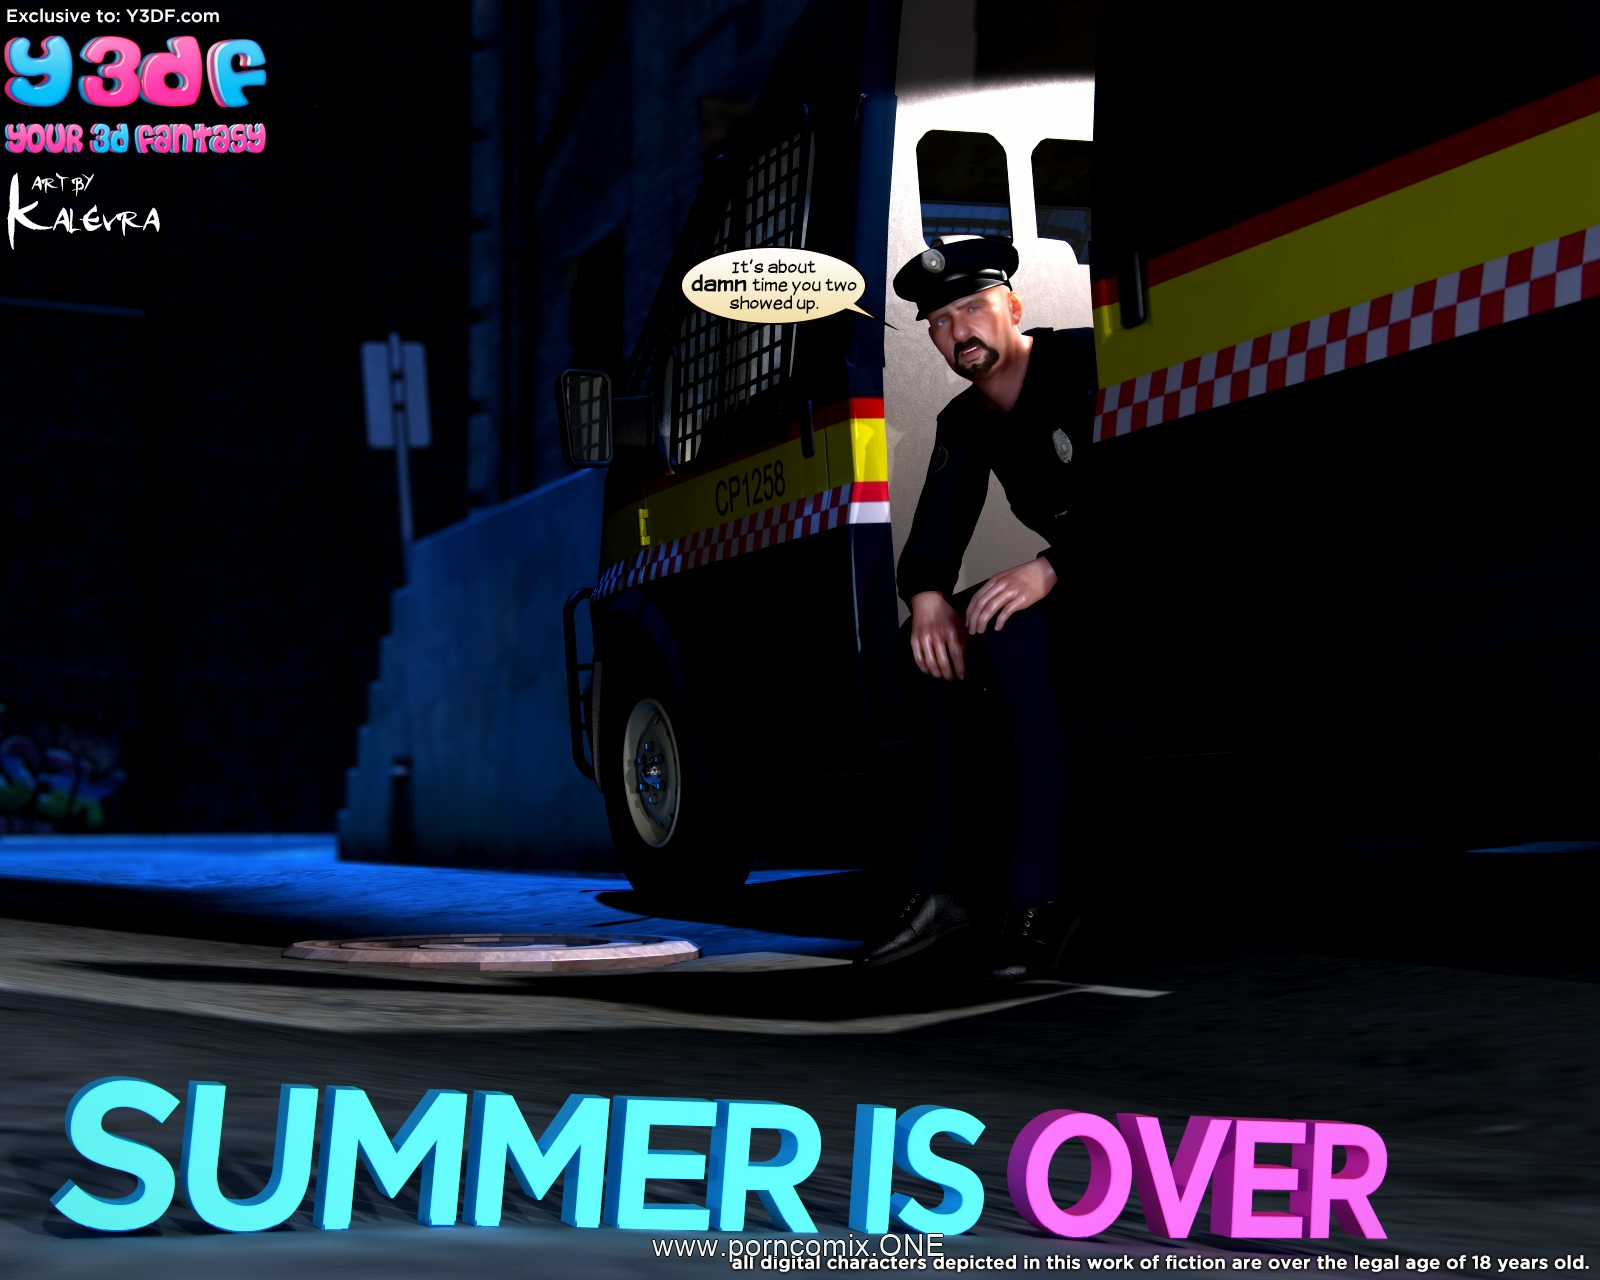 Y3DF- Summer is Over image 1